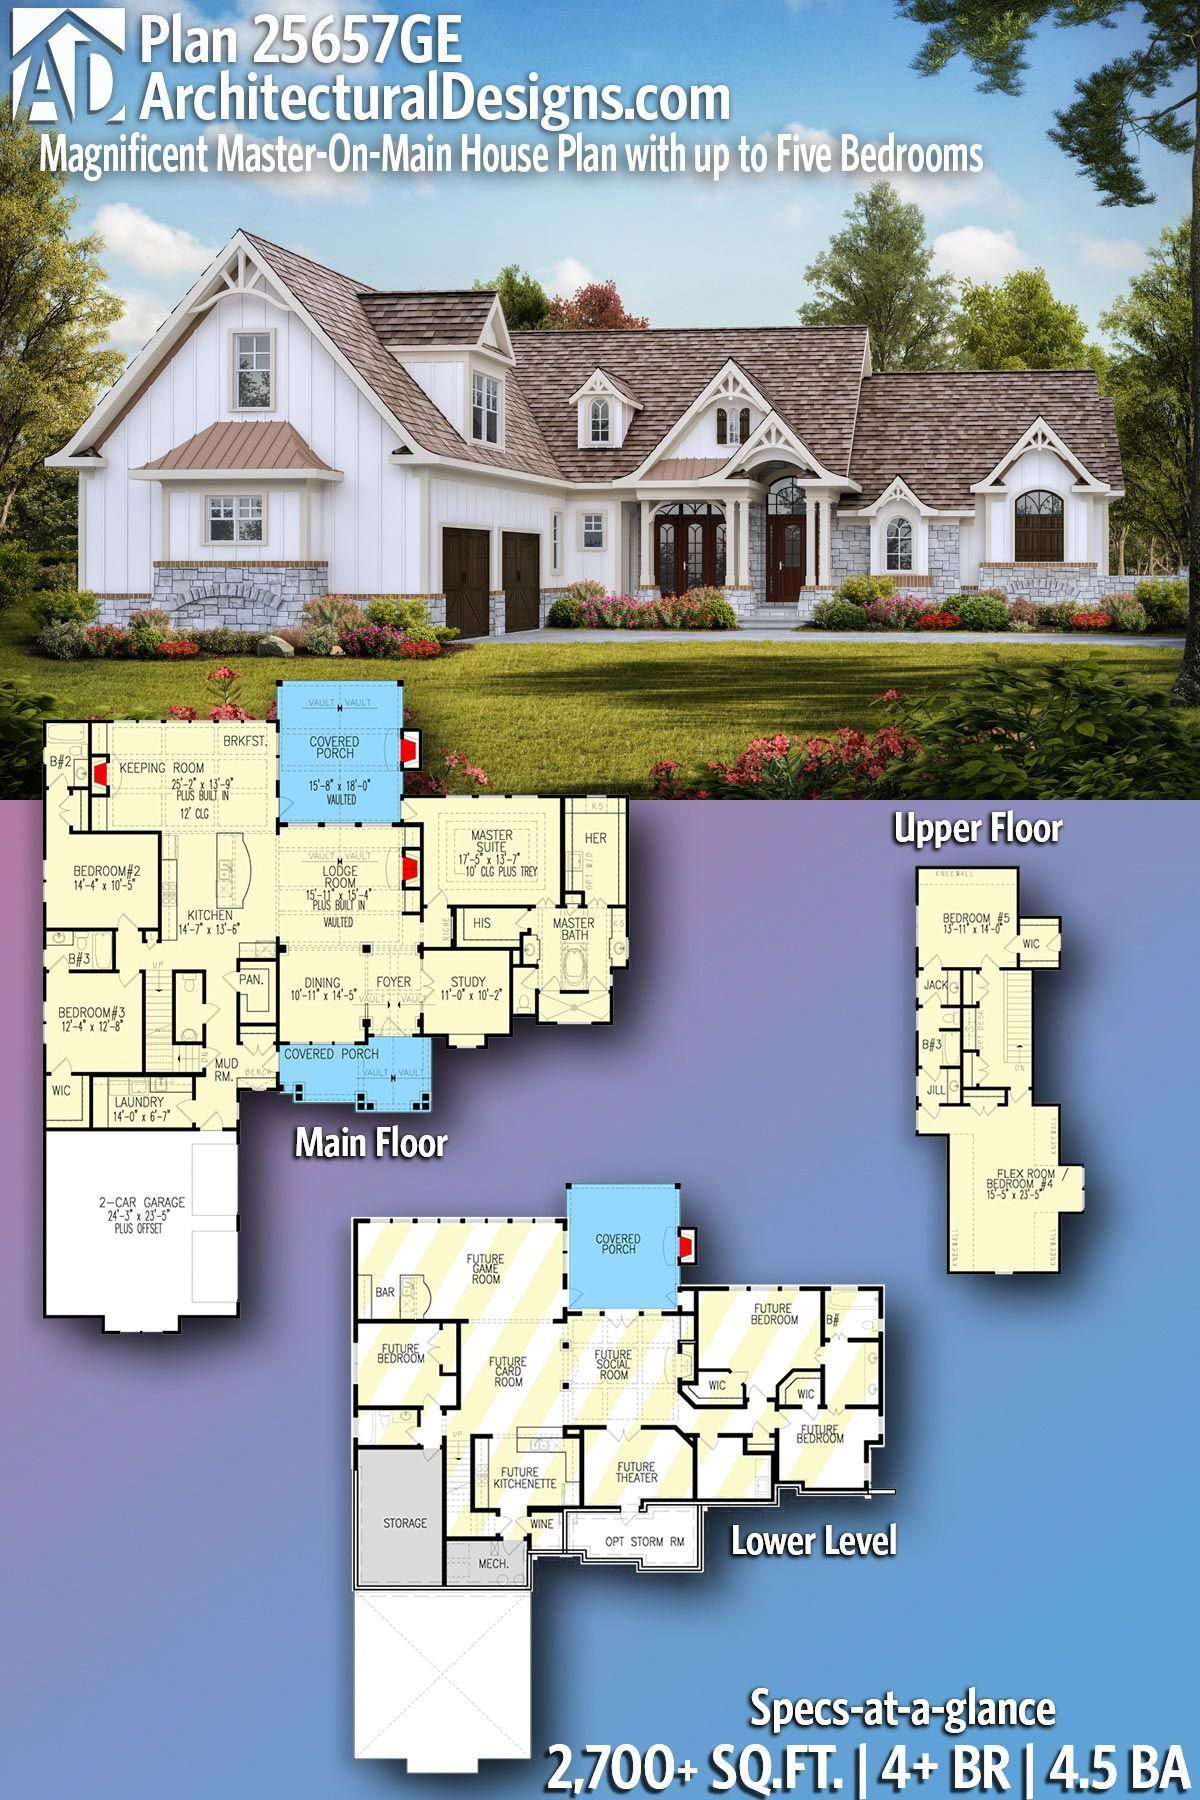 Architectural Designs Home Plan 25657ge Gives You 4 Bedrooms 4 5 Baths And 2 700 Sq Ft Ready When You Are Where Do You Want Maine House House Plans House